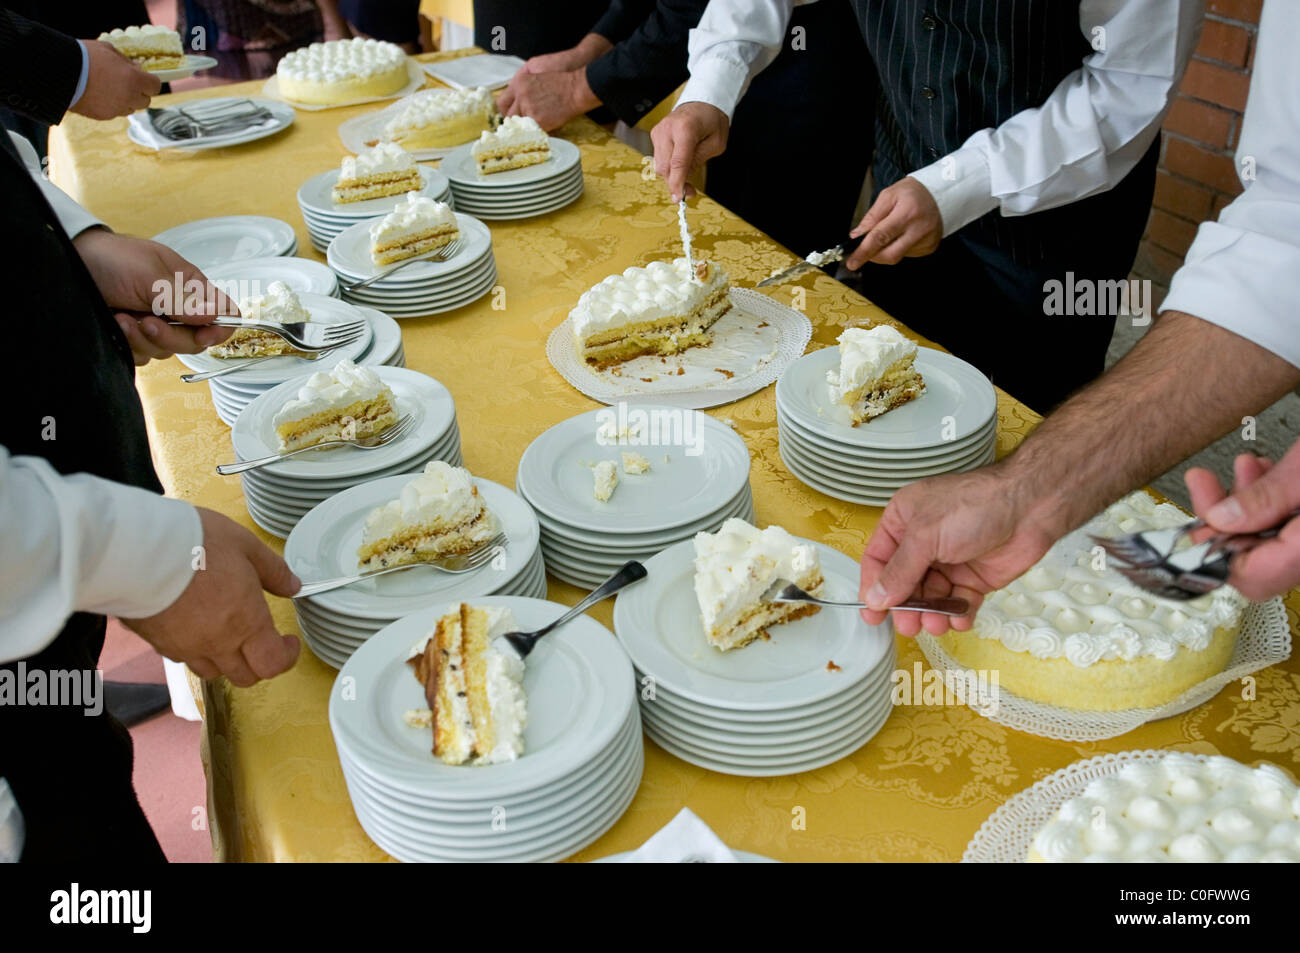 waiters serving wedding cake - Stock Image